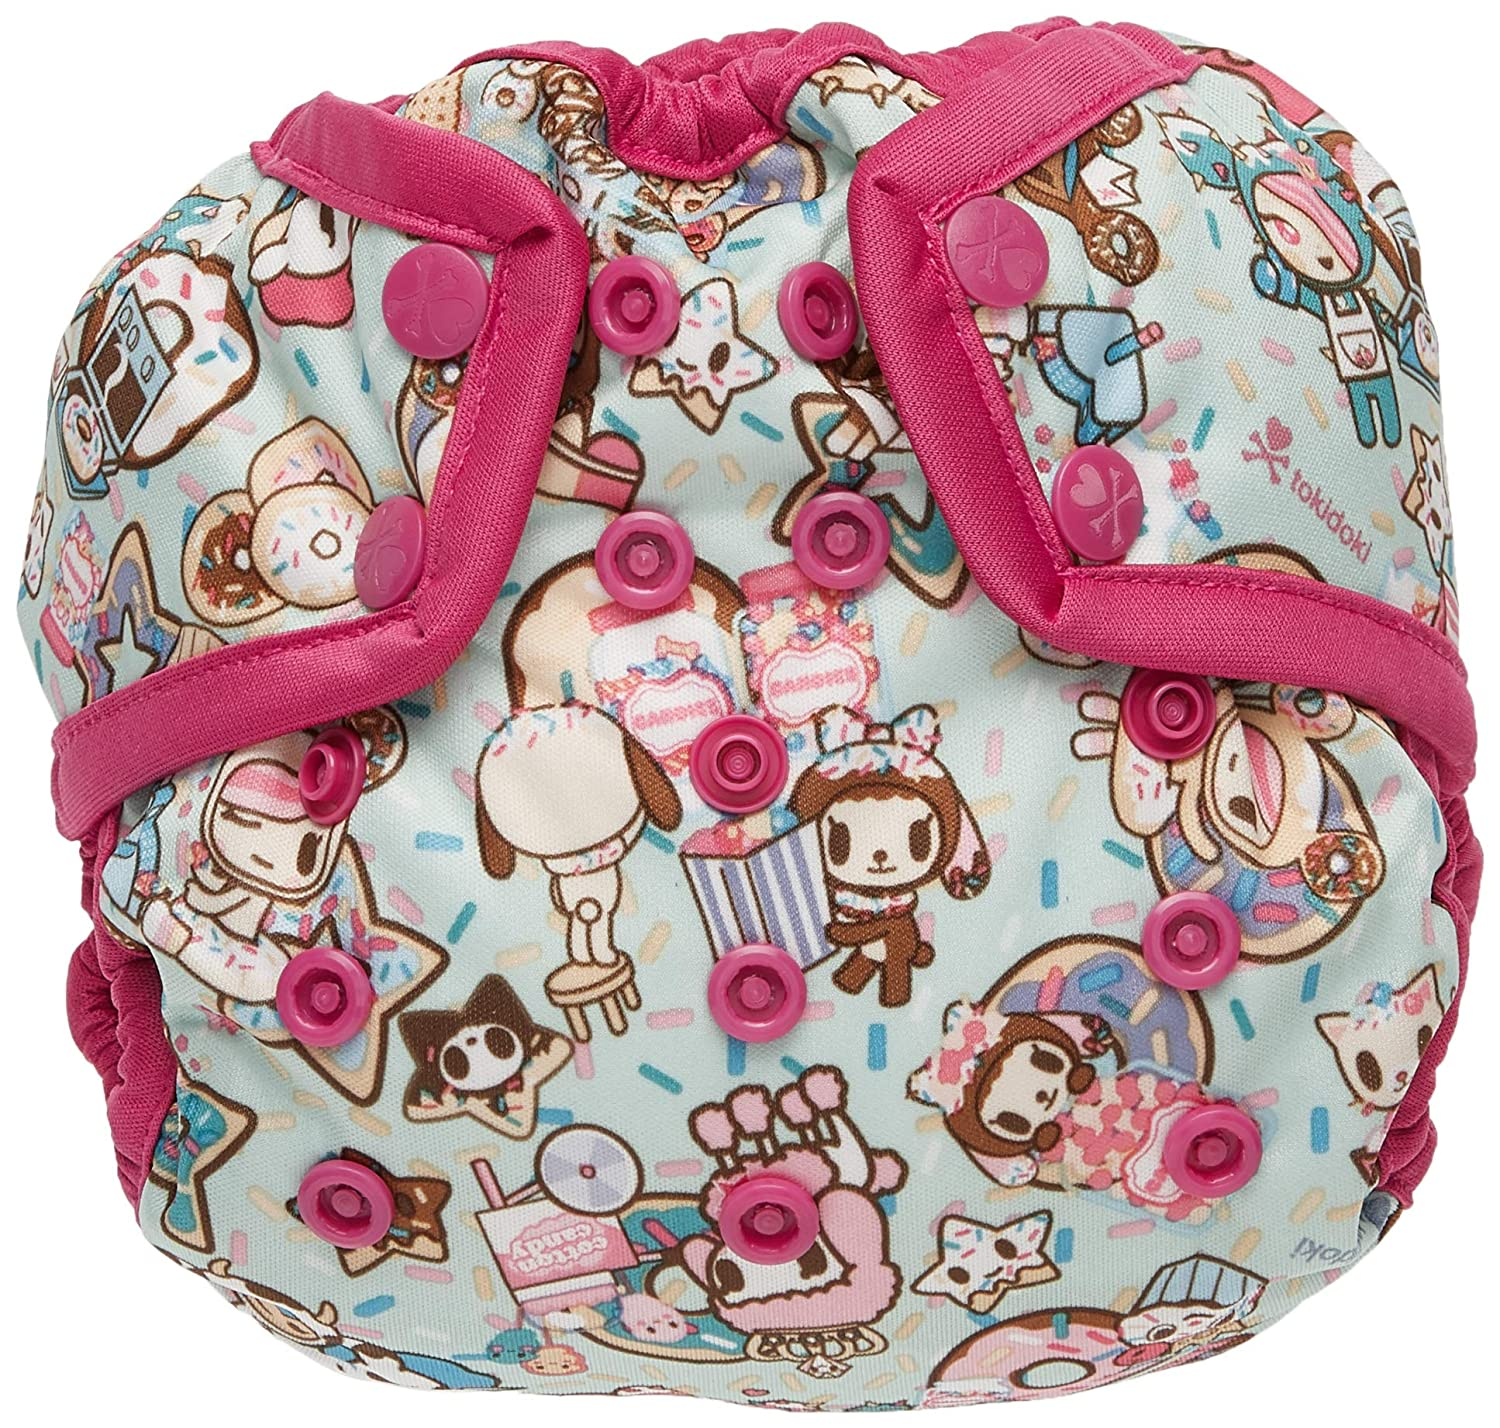 Snap Kanga Care Rumparooz One Size Cloth Diaper Cover Sweet